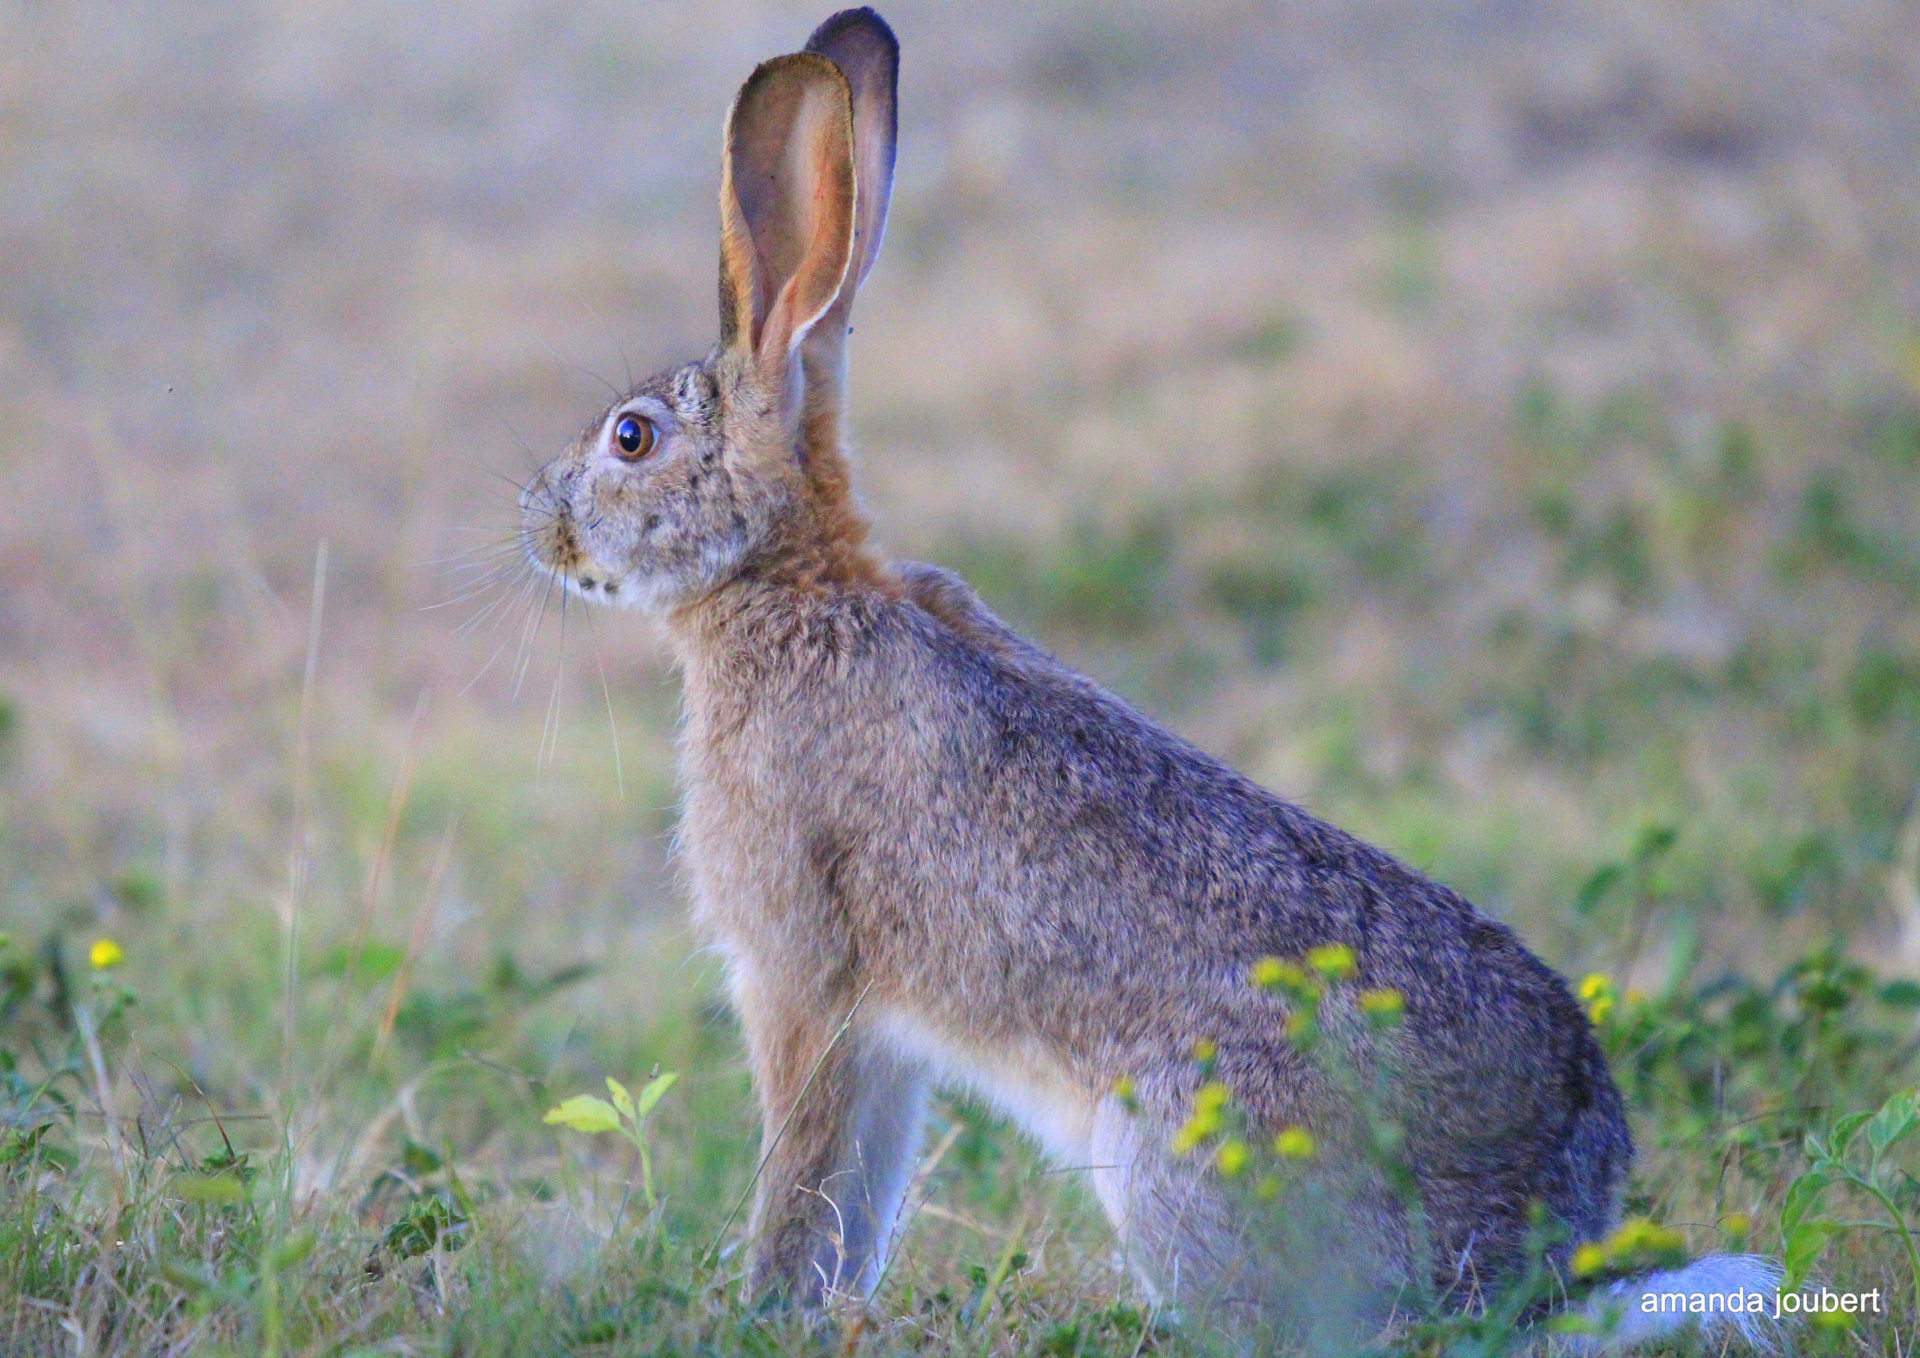 Bunny or Hare